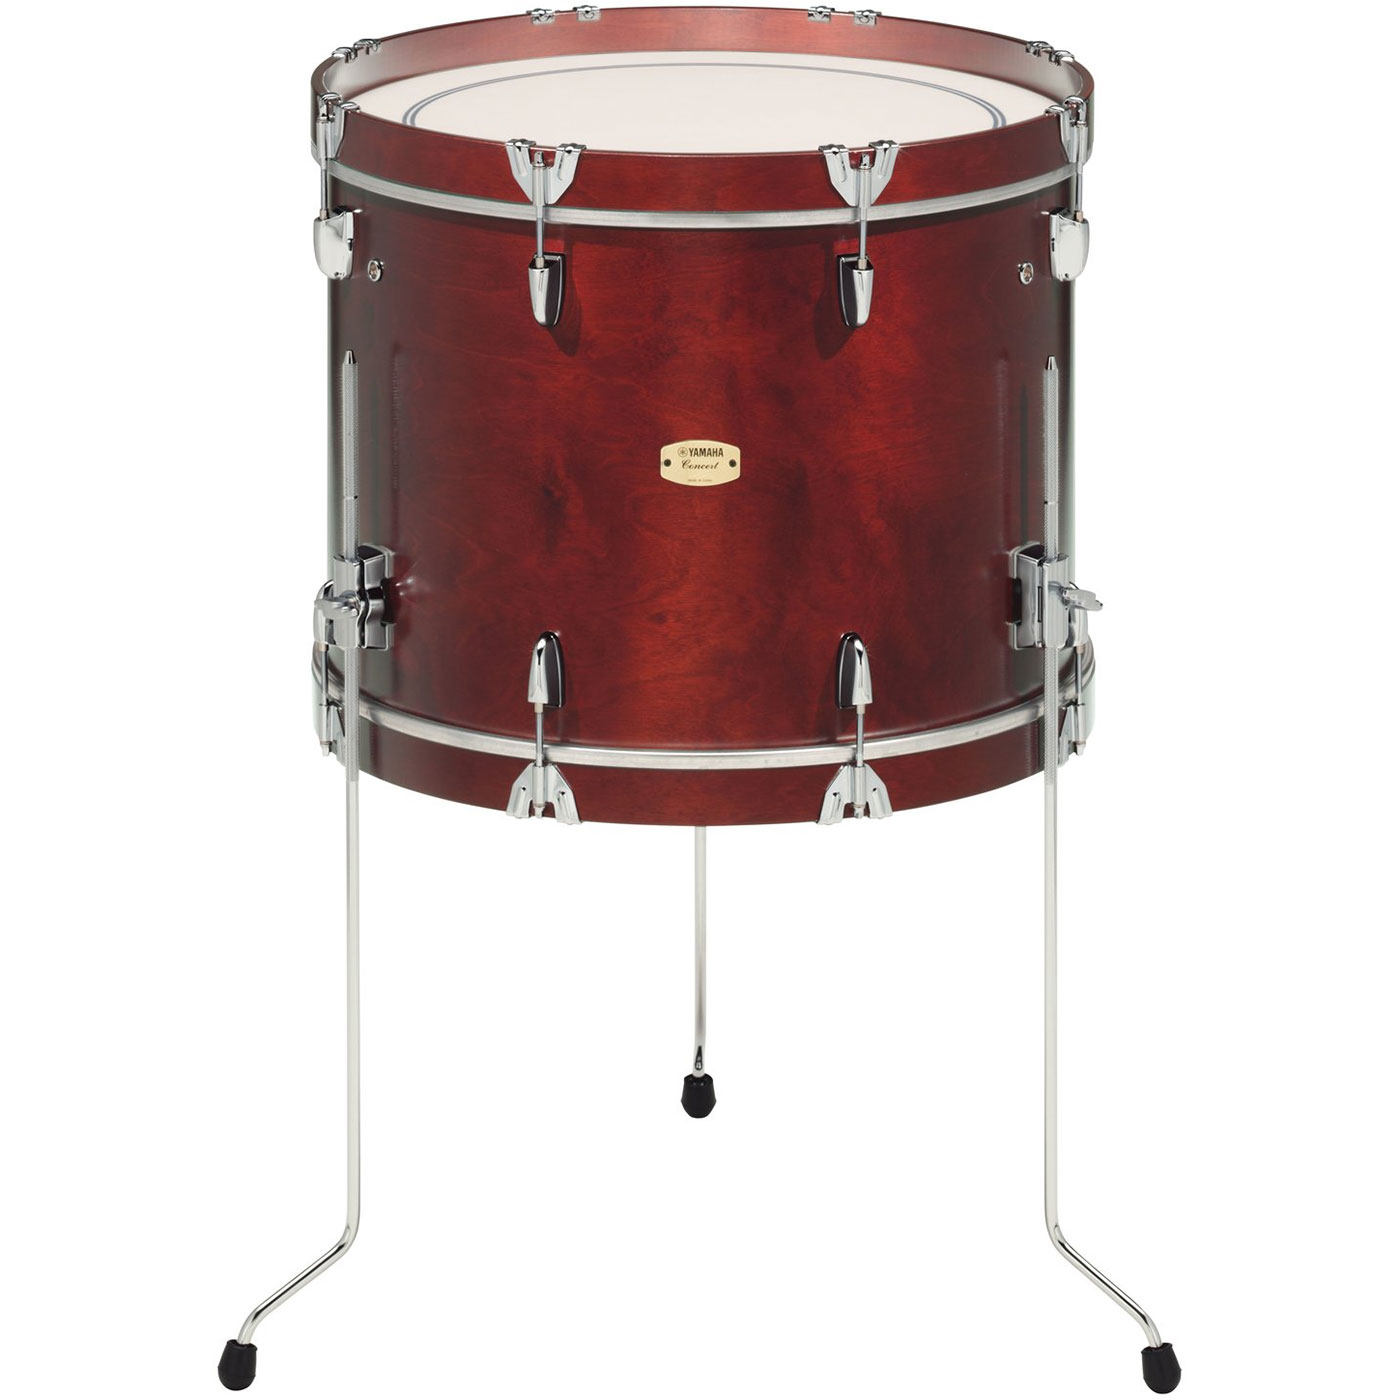 "Yamaha 22"" x 16"" 9000 Series Impact Drum in Darkwood Stain"